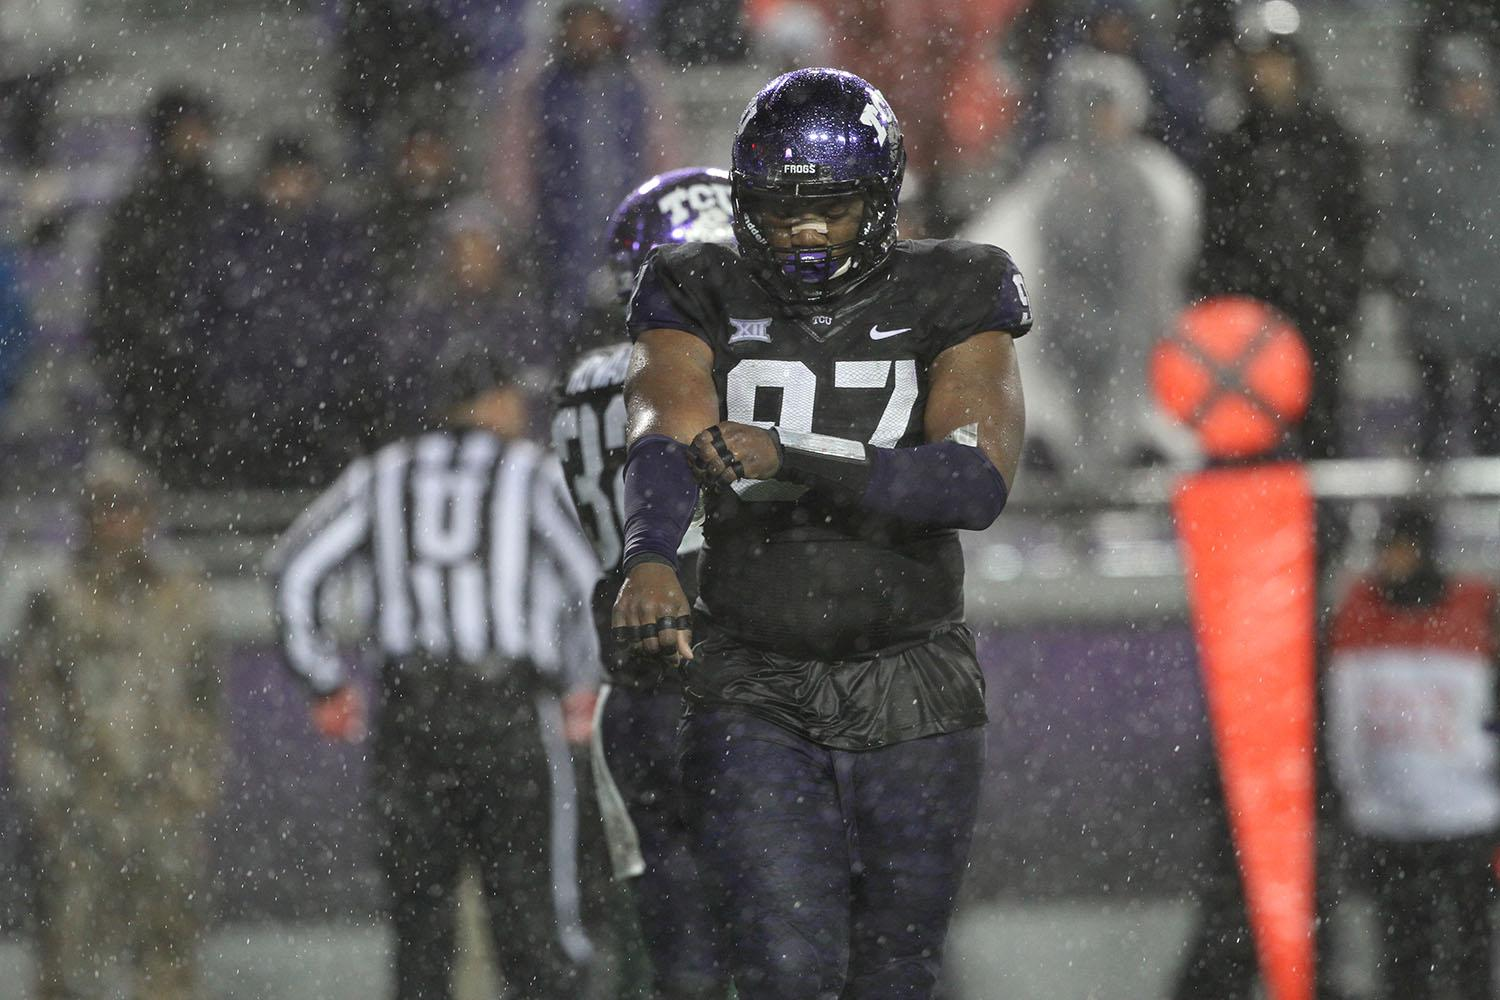 Win over Baylor speaks volumes of Frogs' resilience